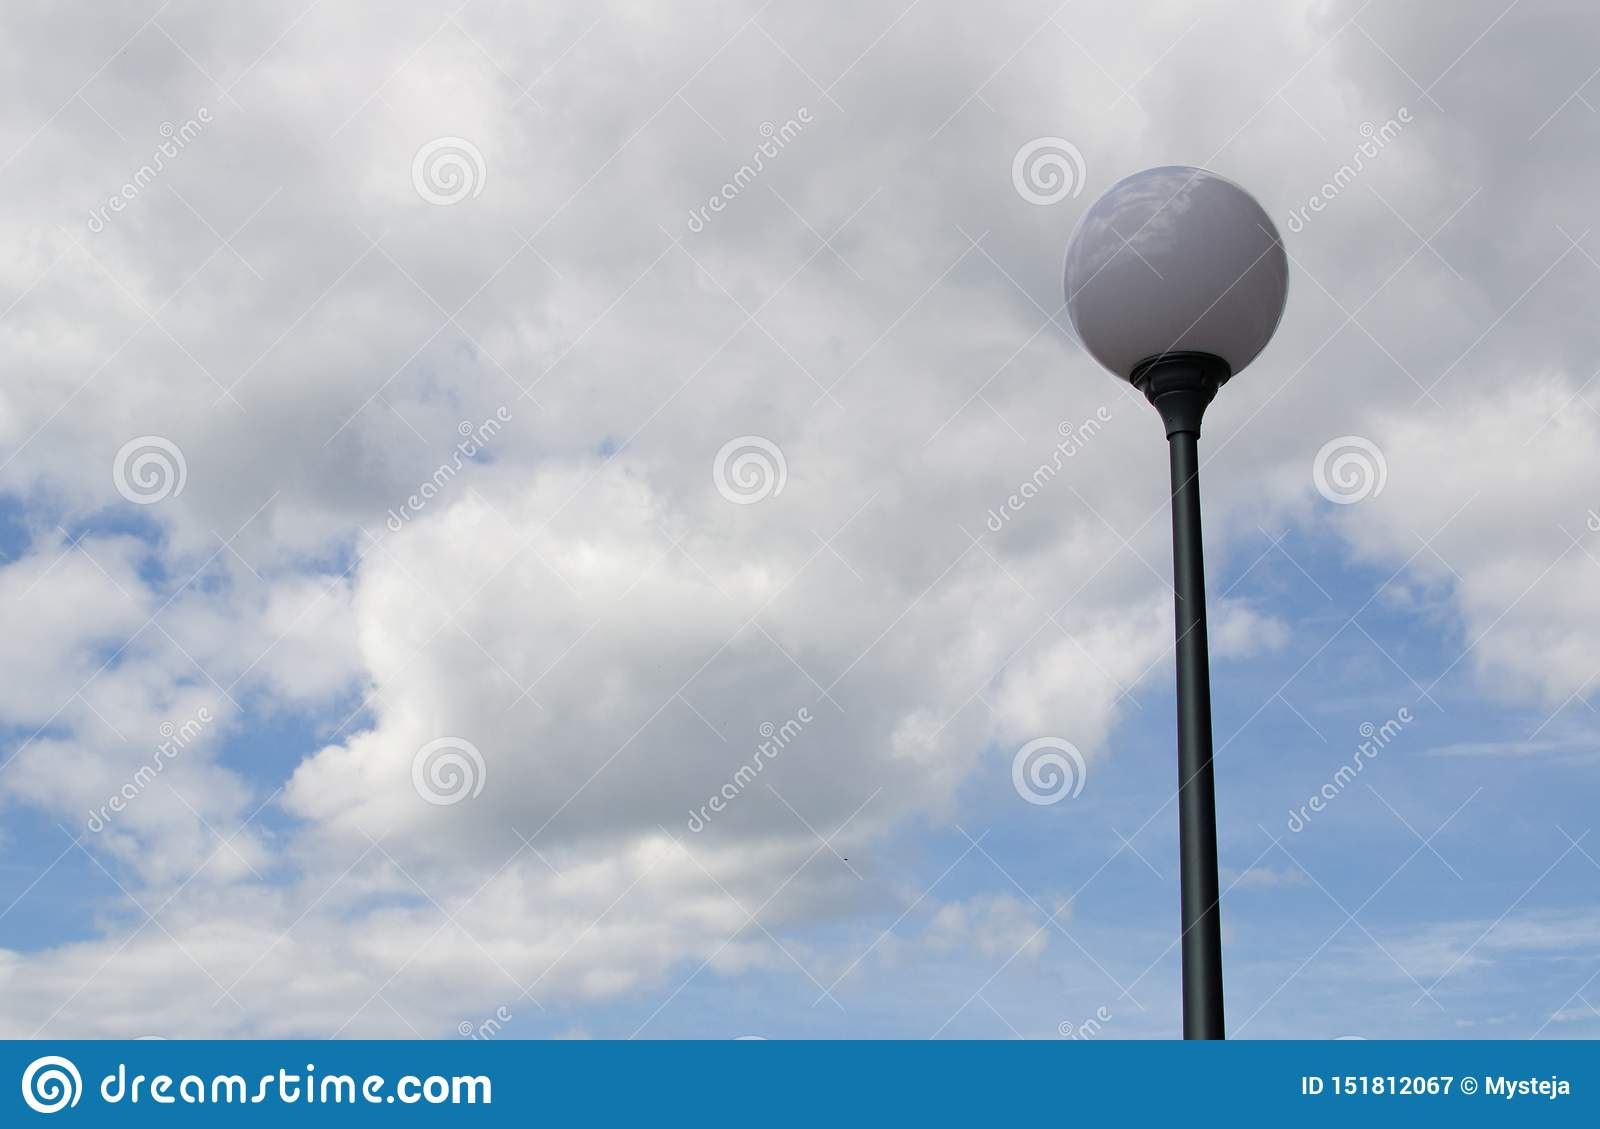 Round street lamp against a cloudy sky